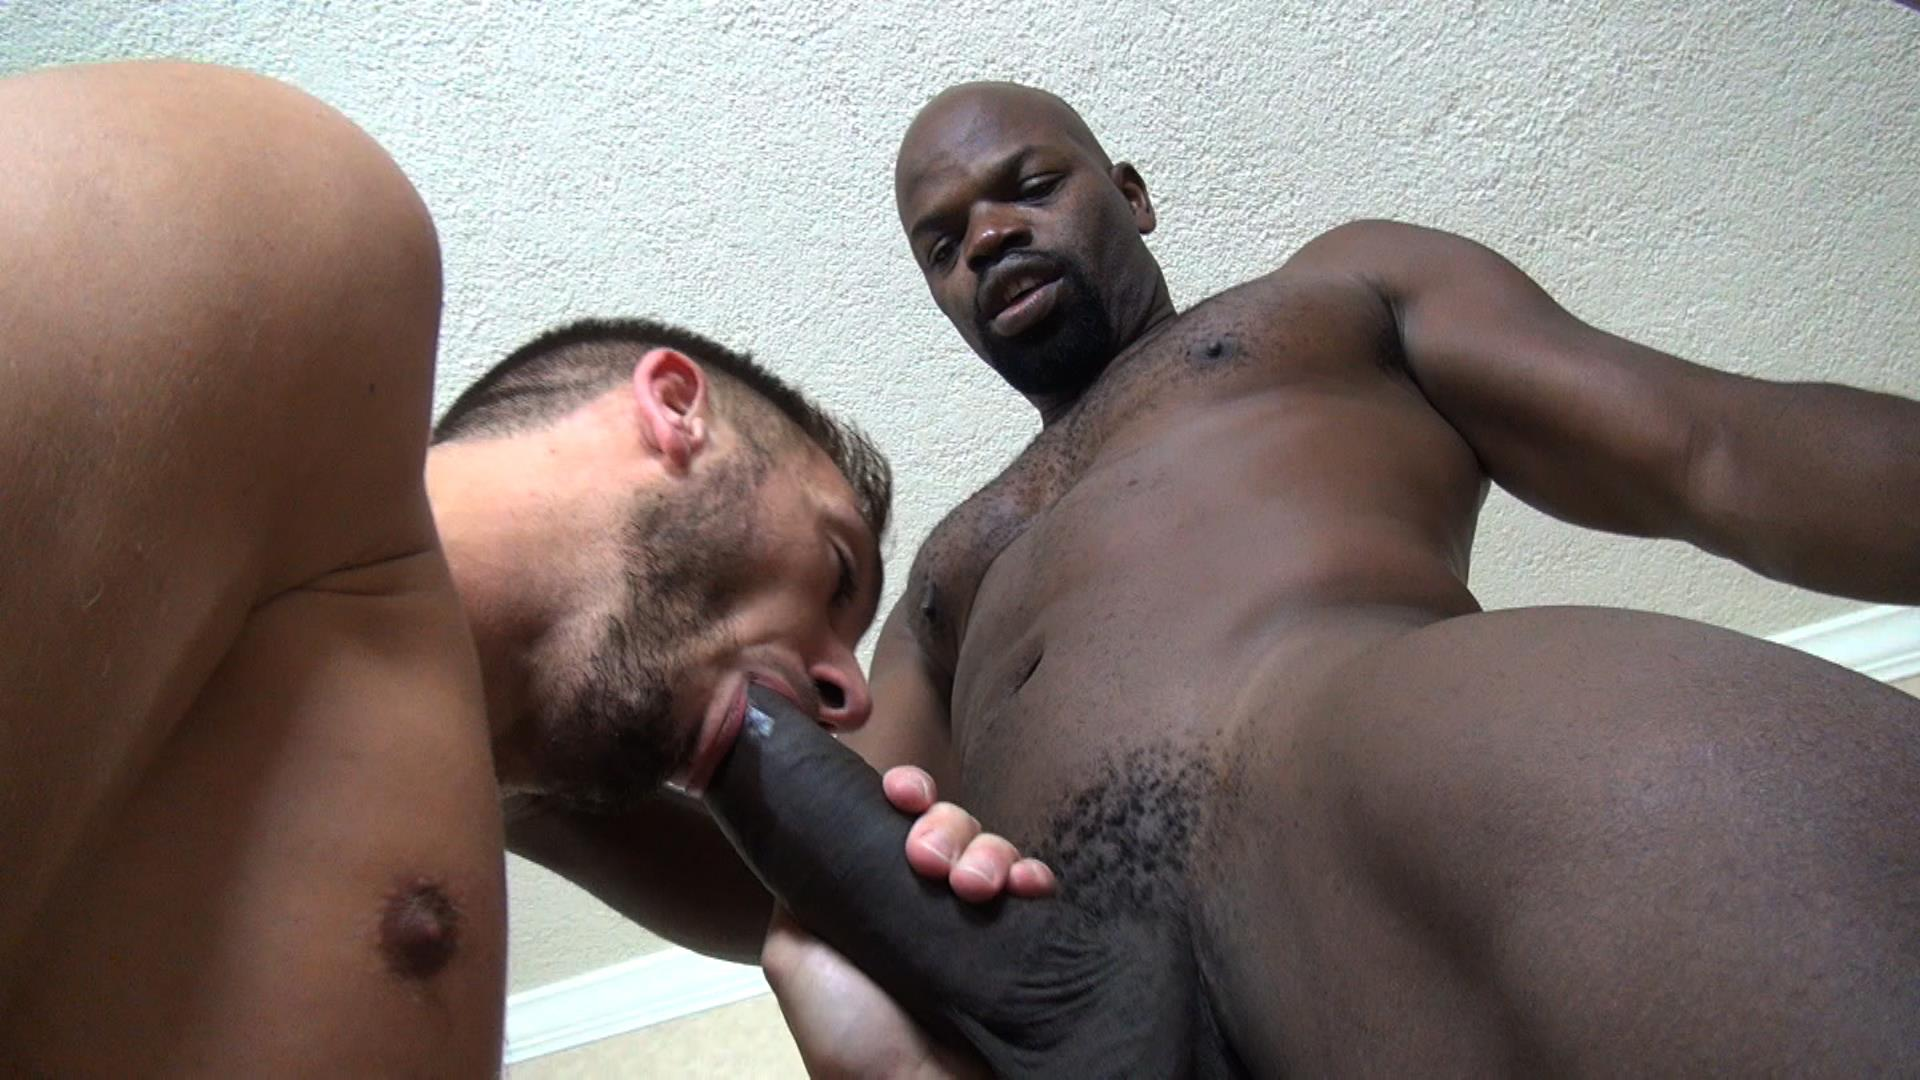 Interracial Gay Cocksucking